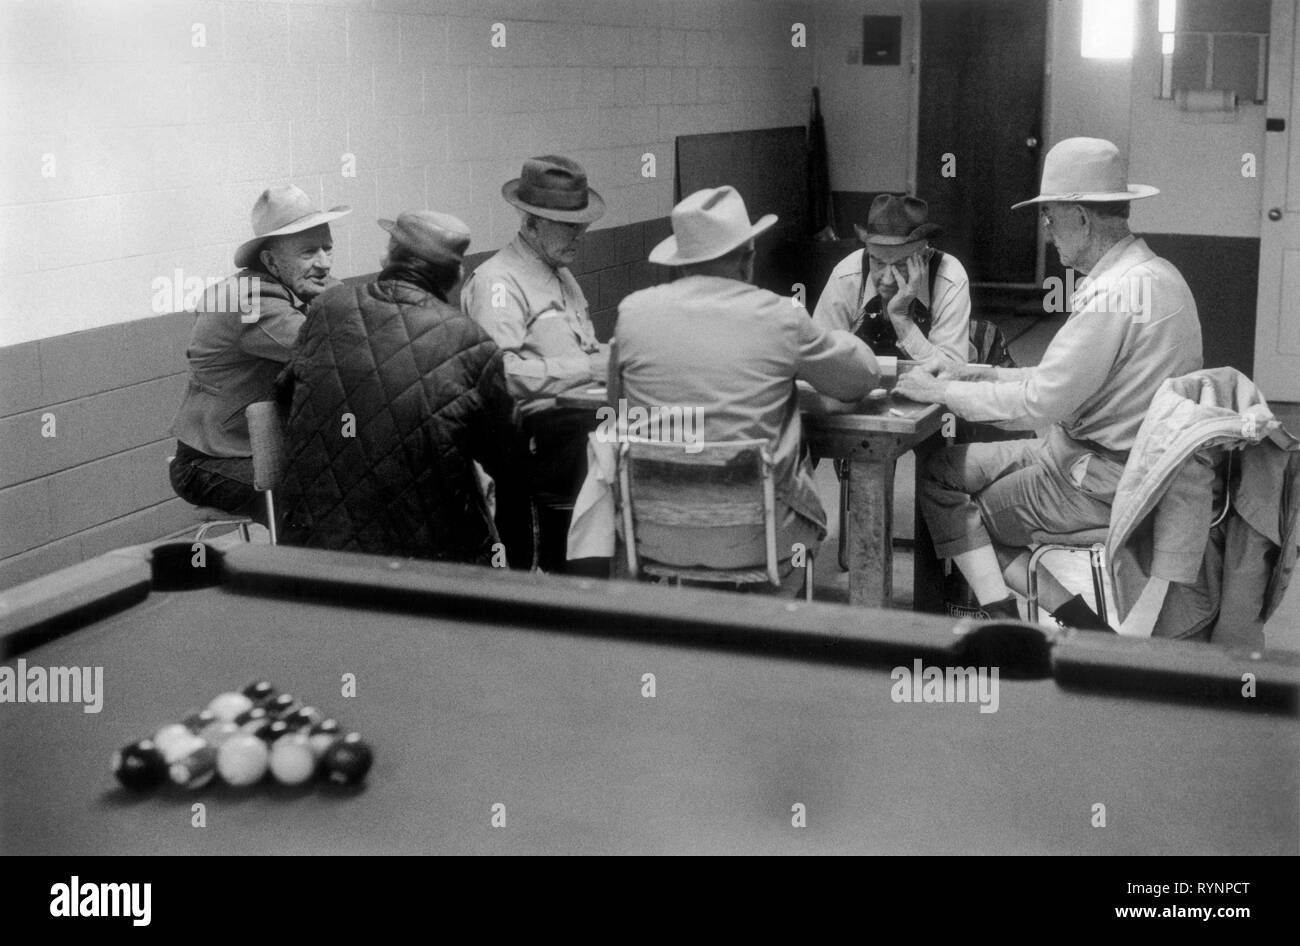 AZTEC, NEW MEXICO, USA 1970s: MEN PLAYING DOMINOES IN BAR WITH POOL TABLE.   Six 6 middle old age retired seniors OAP  men male in  pool hall playing dominoes talking passing the time of day concentration wearing cowboy hats candid reportage interior scene . US 70S HOMER SYKES - Stock Image